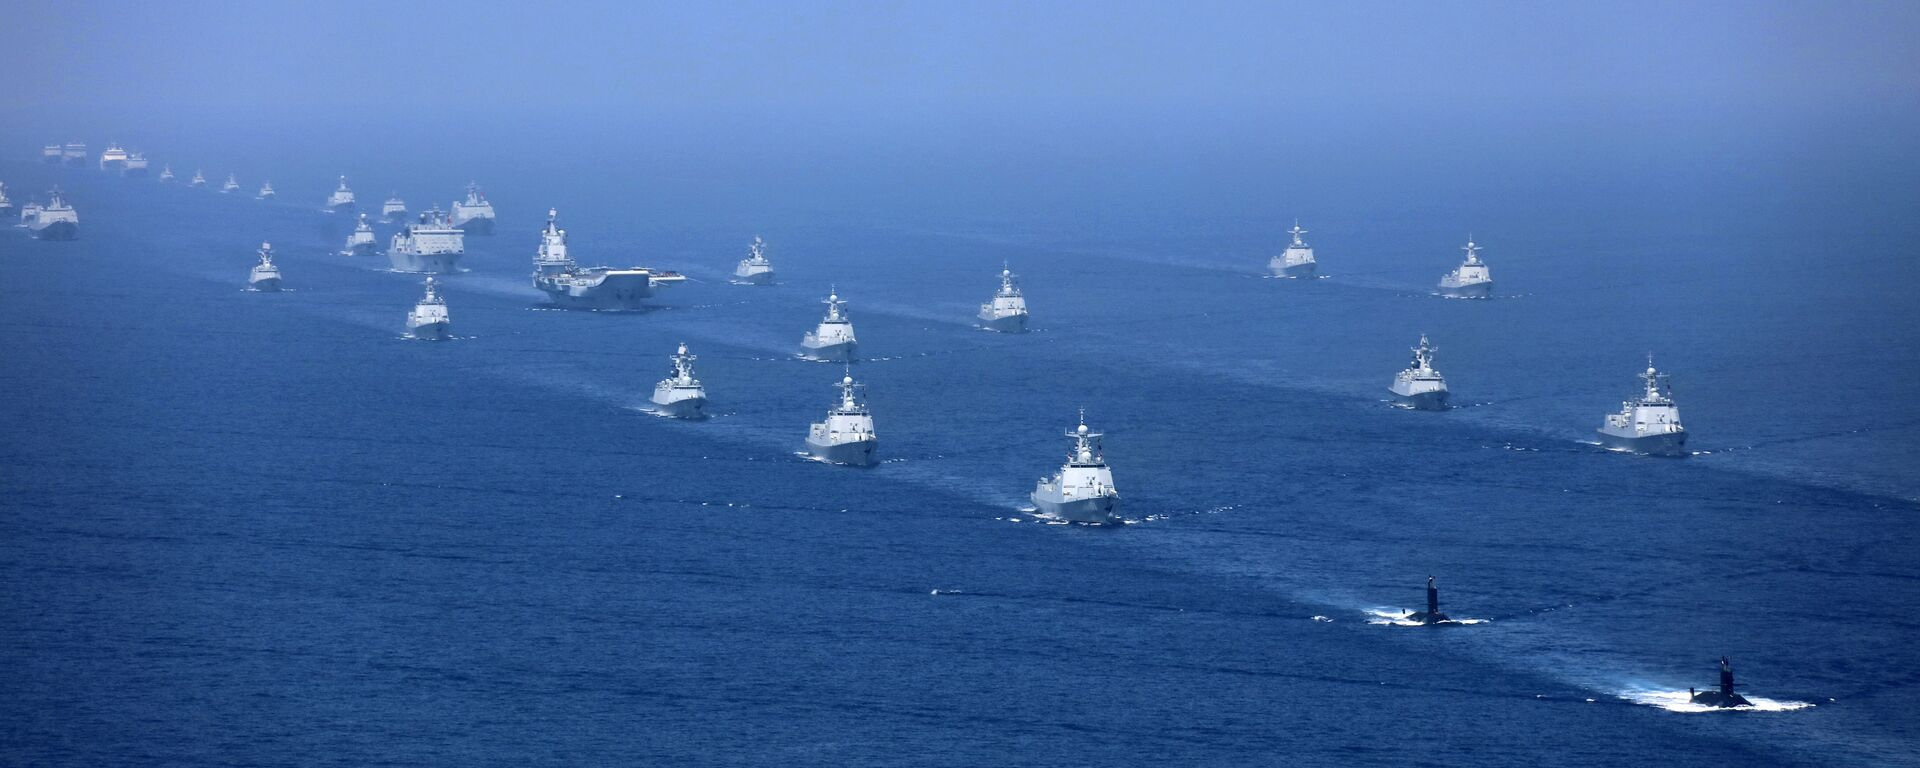 In this April 12, 2018 photo released by Xinhua News Agency, the Liaoning aircraft carrier is accompanied by navy frigates and submarines conducting an exercises in the South China Sea - Sputnik International, 1920, 13.10.2021